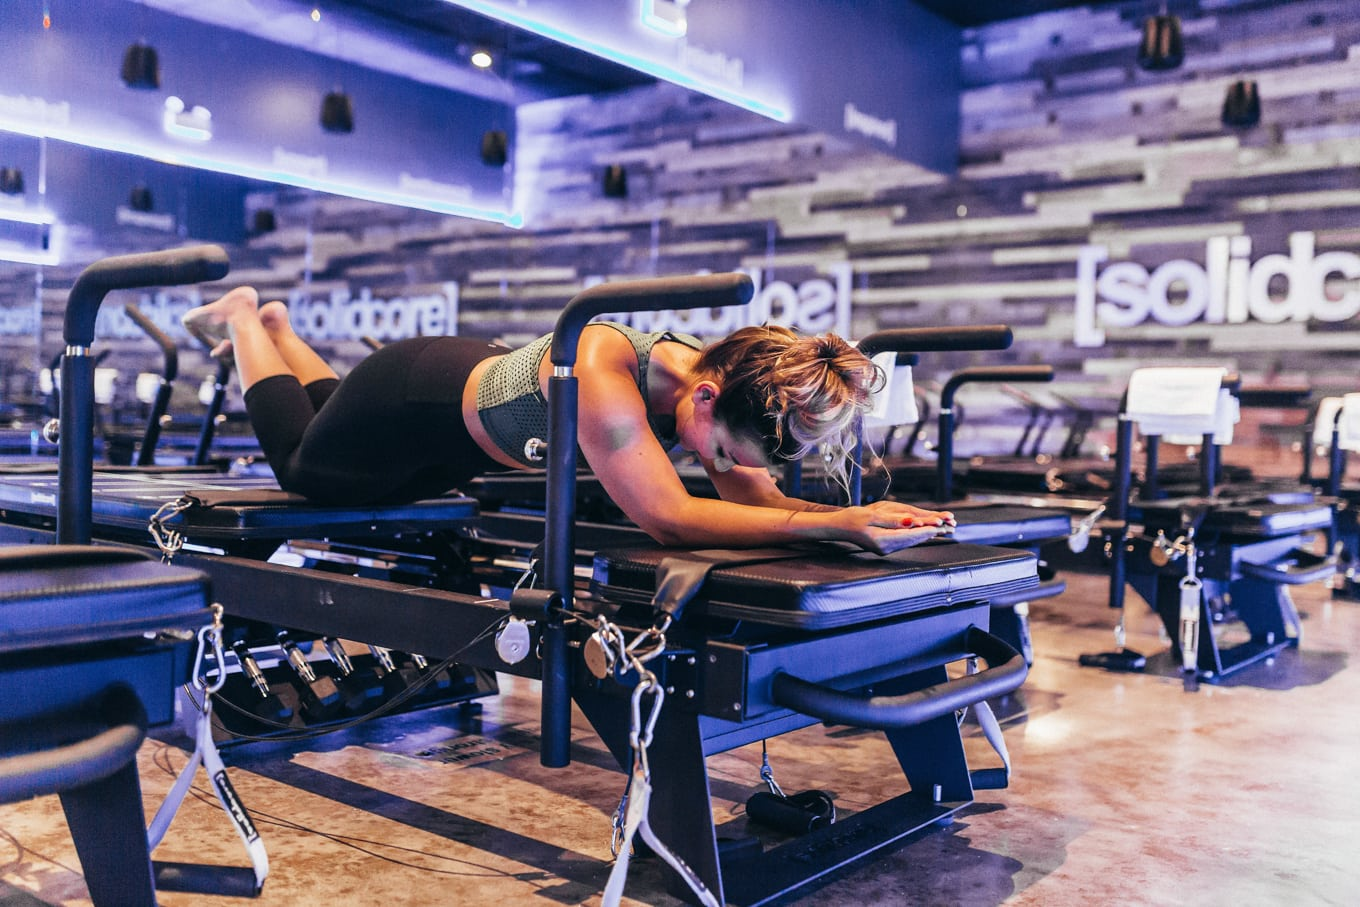 All about solidcore - tips for beginners - Lake Shore Lady